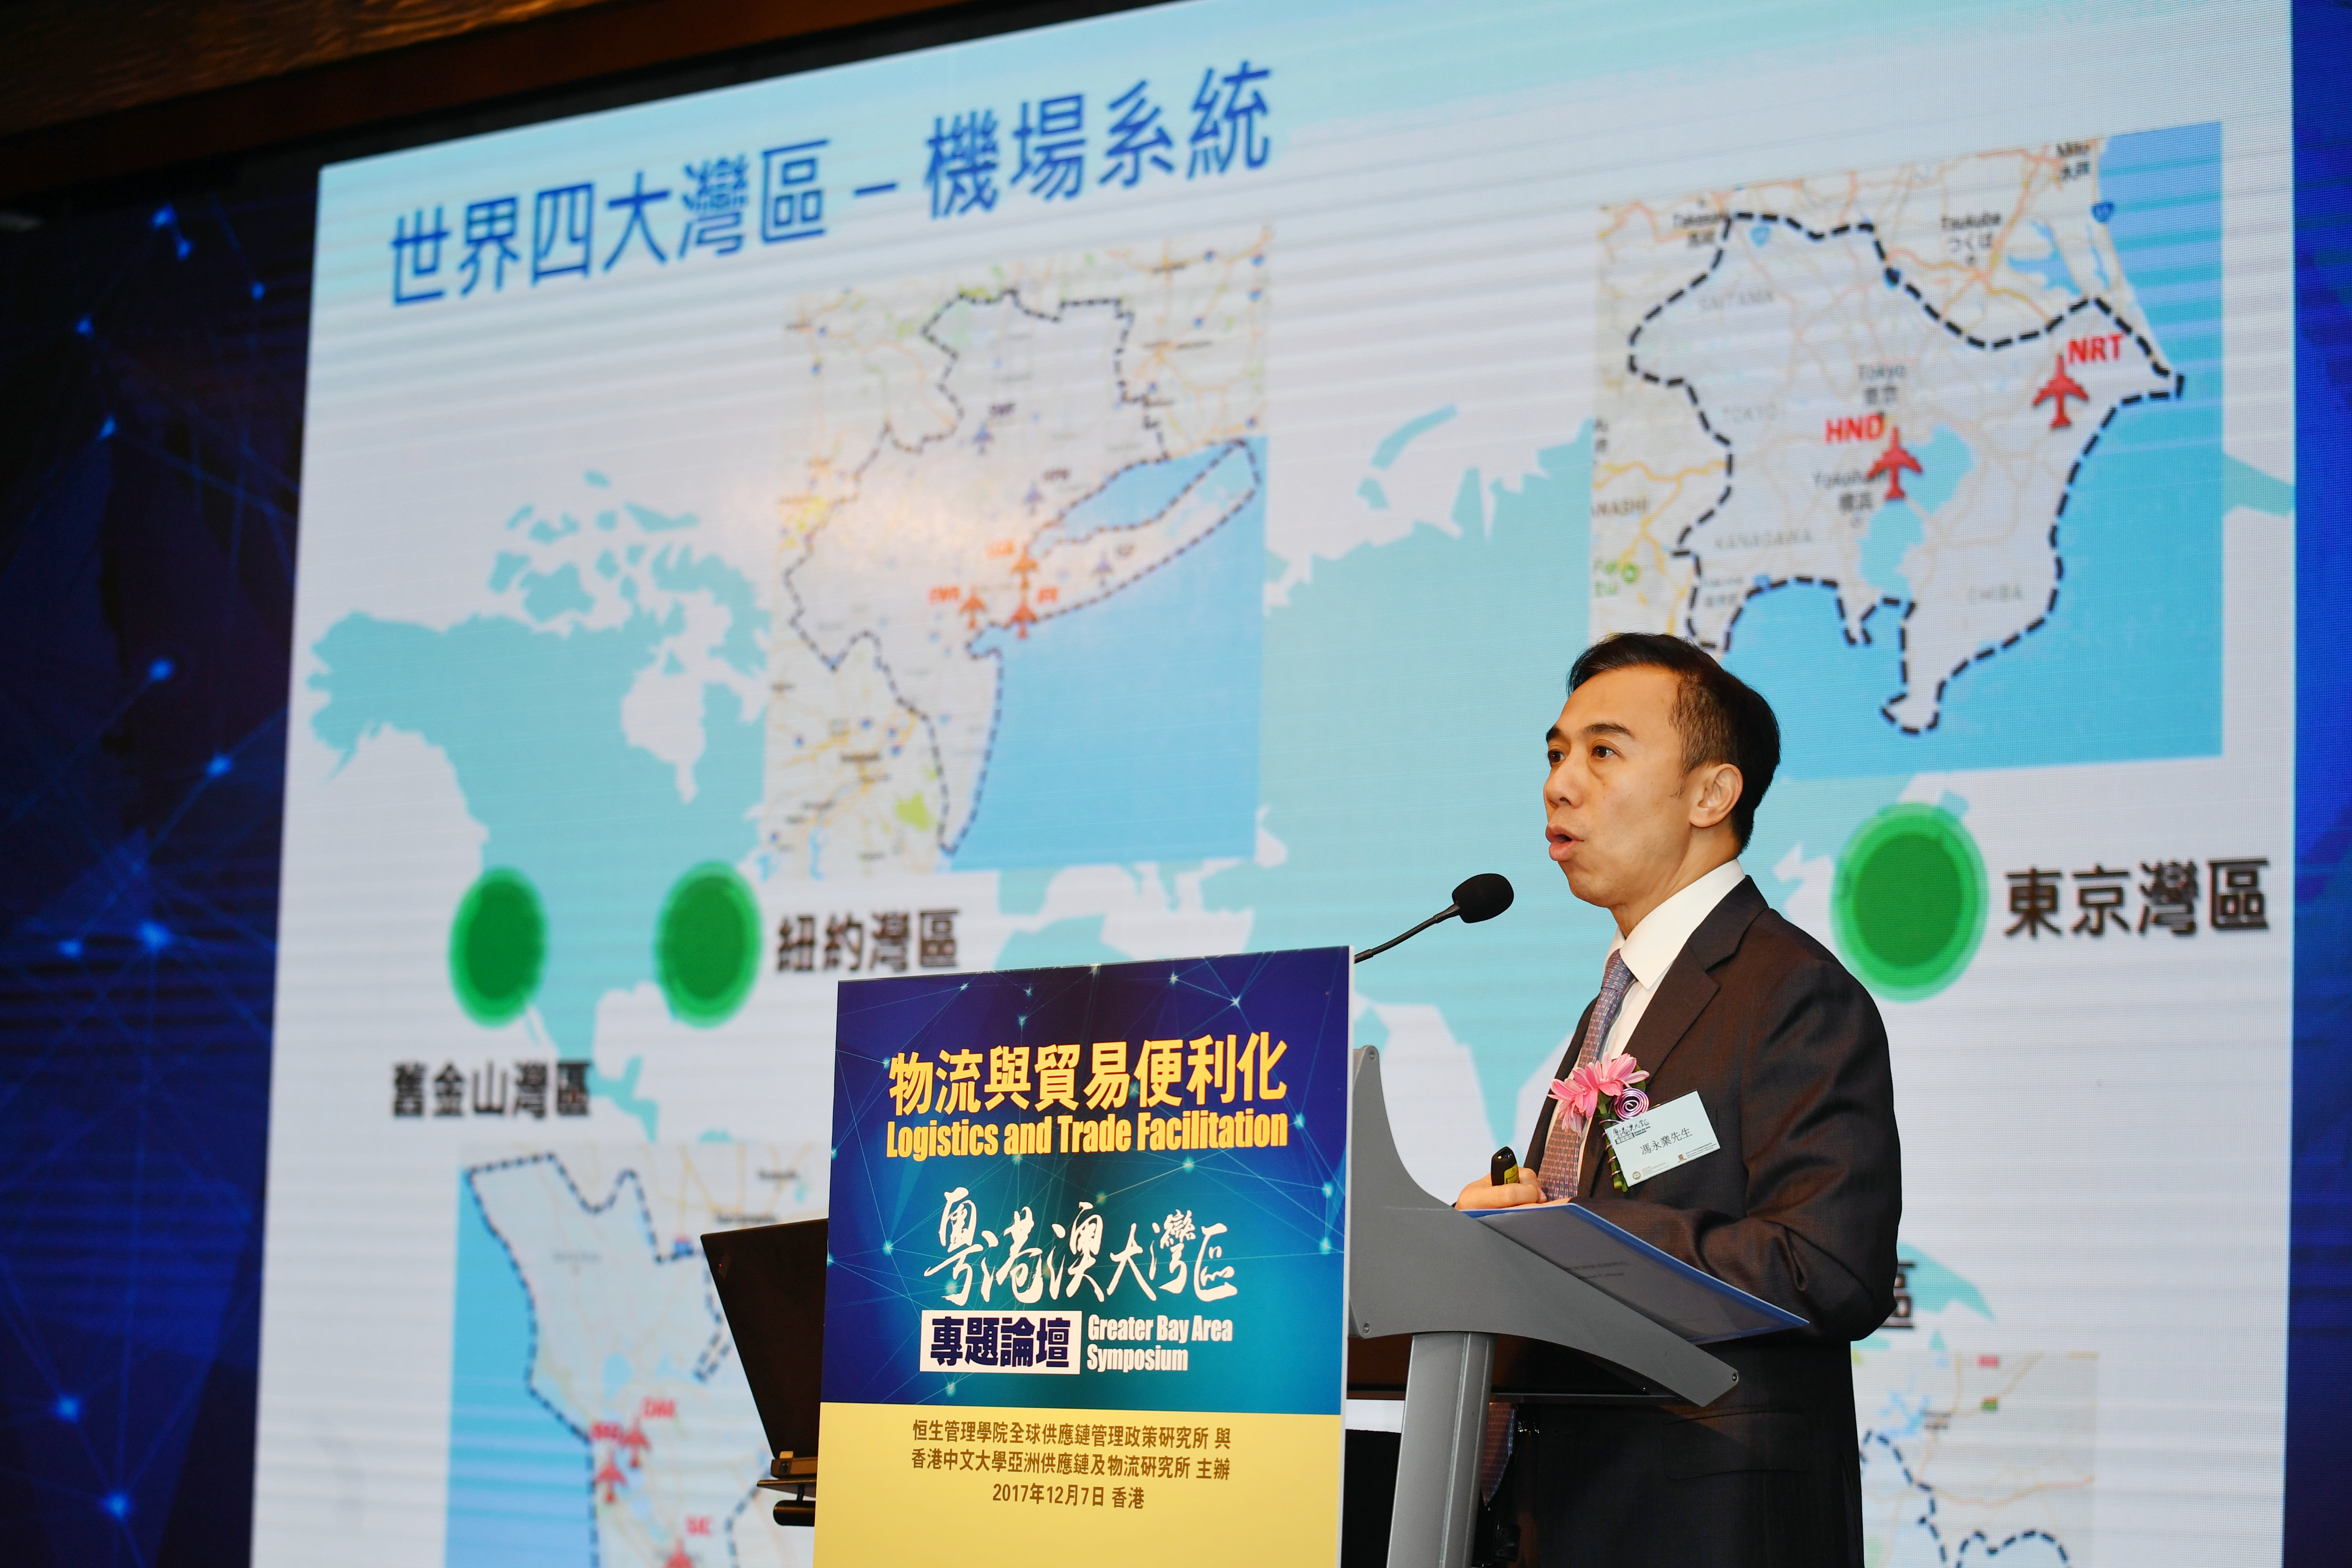 Mr Wilson Fung Wing-yip, Executive Director of Corporate Development of Hong Kong Airport Authority, delivered a keynote speech.